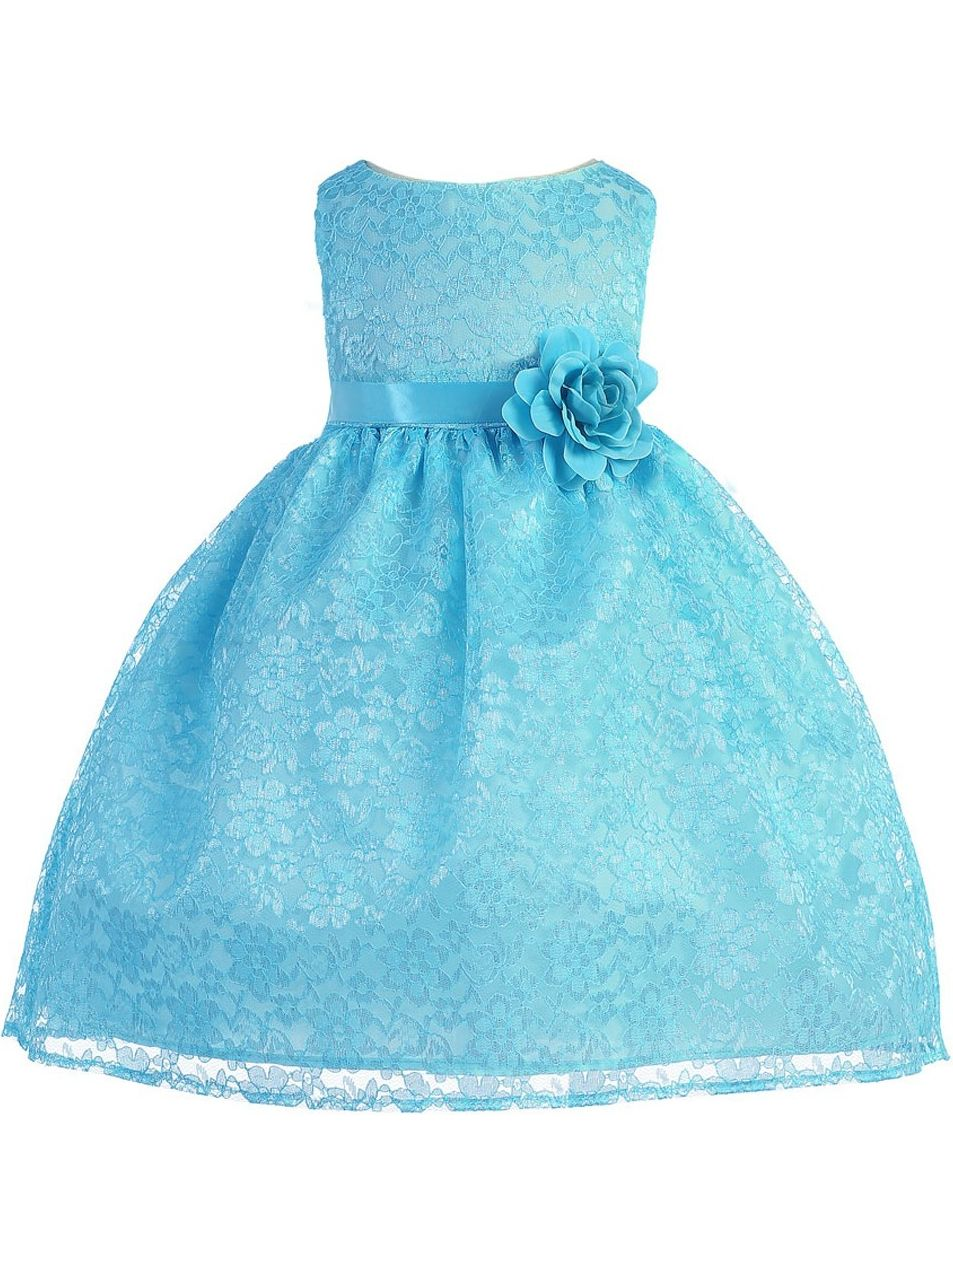 Baby Girls Turquoise Floral Lace Flower Girl Dress 6-24M